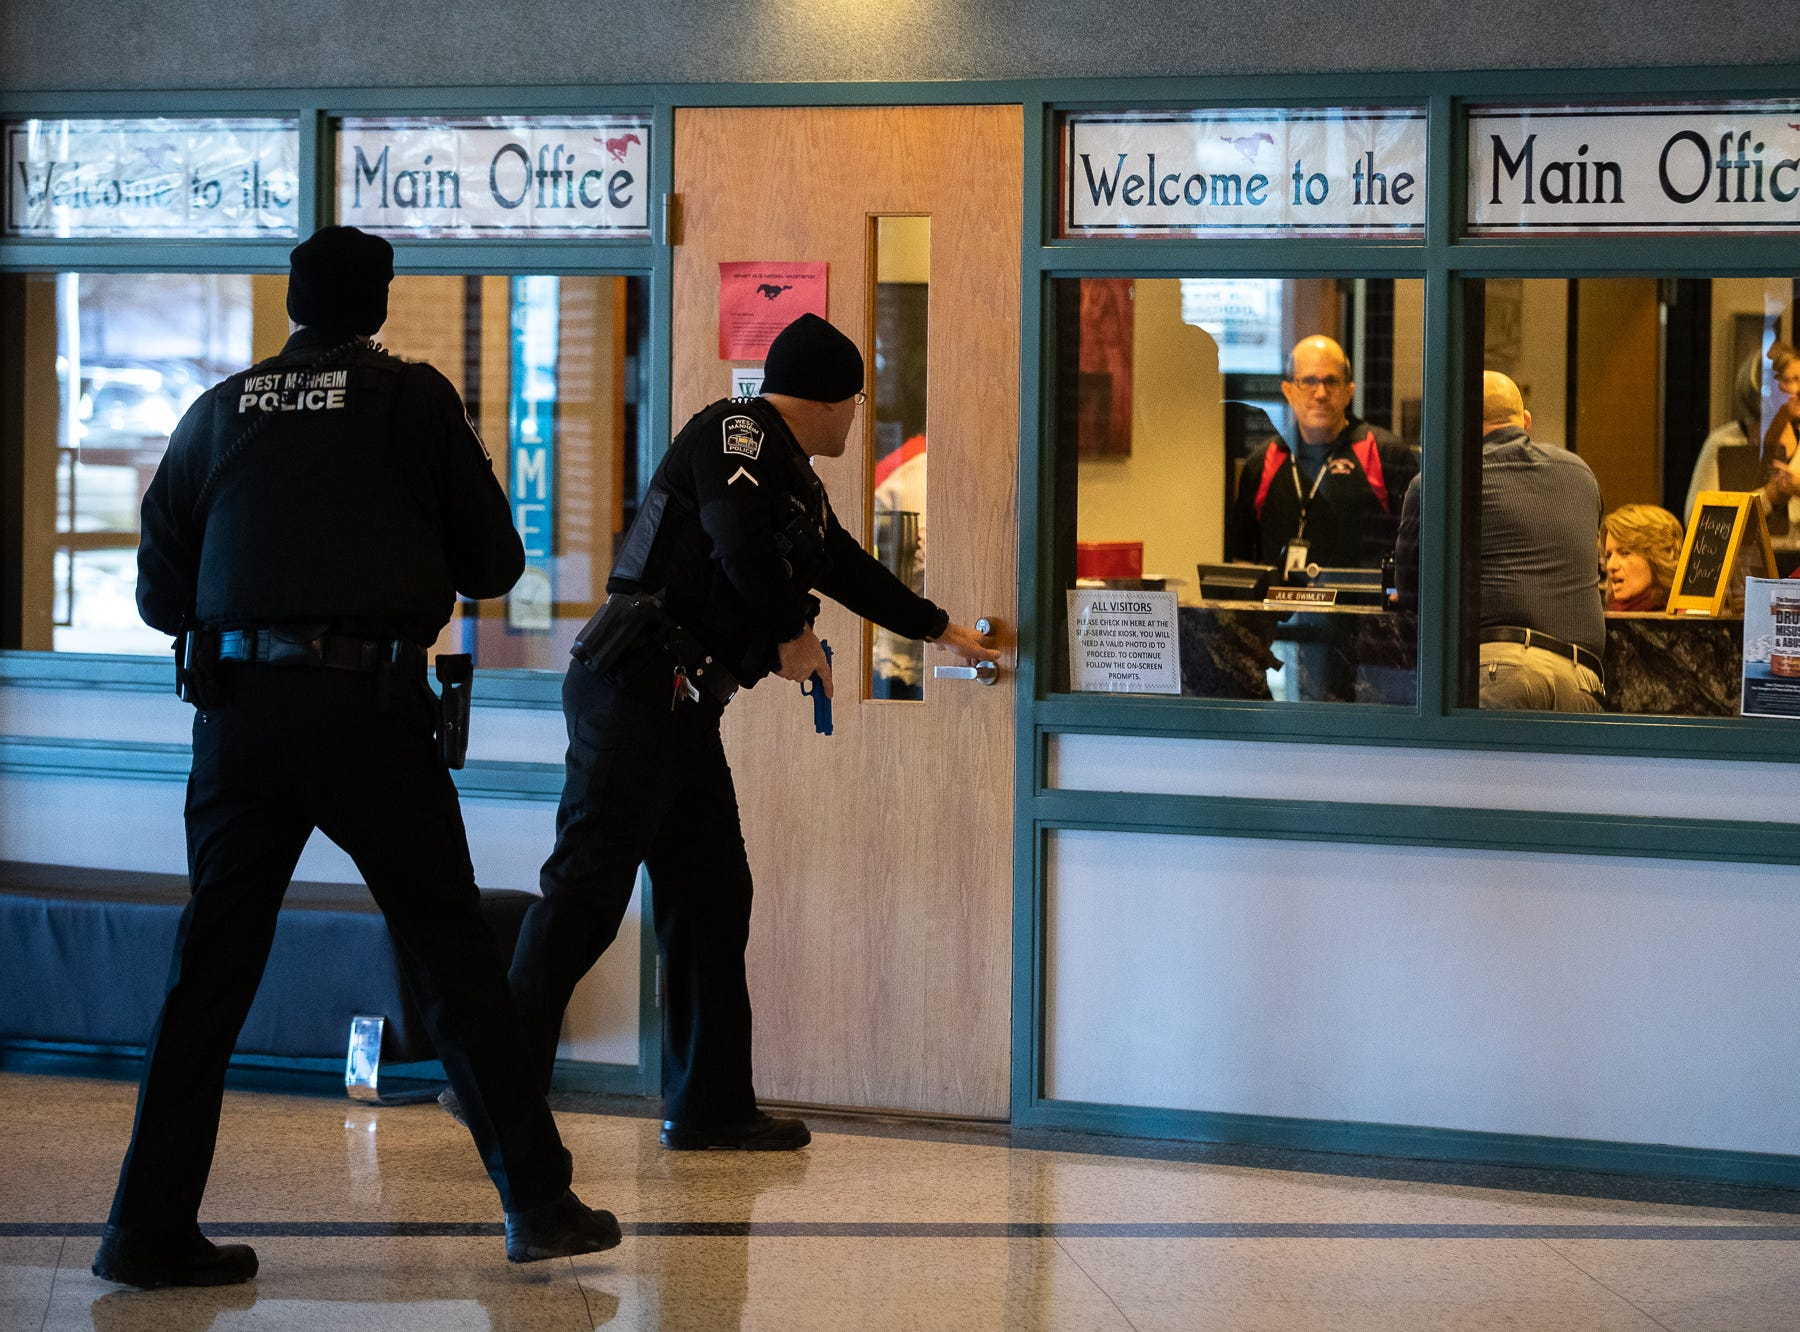 Police officers make entry while they take part in an active shooter drill at South Western High School, Monday, Jan. 21, 2019, in Penn Township. The drill simulated multiple scenarios involving an active shooter, allowing school security and local law enforcement agencies a hands-on opportunity to drill on engaging an active shooter while also giving school staff experience with how real world scenarios could unfold.